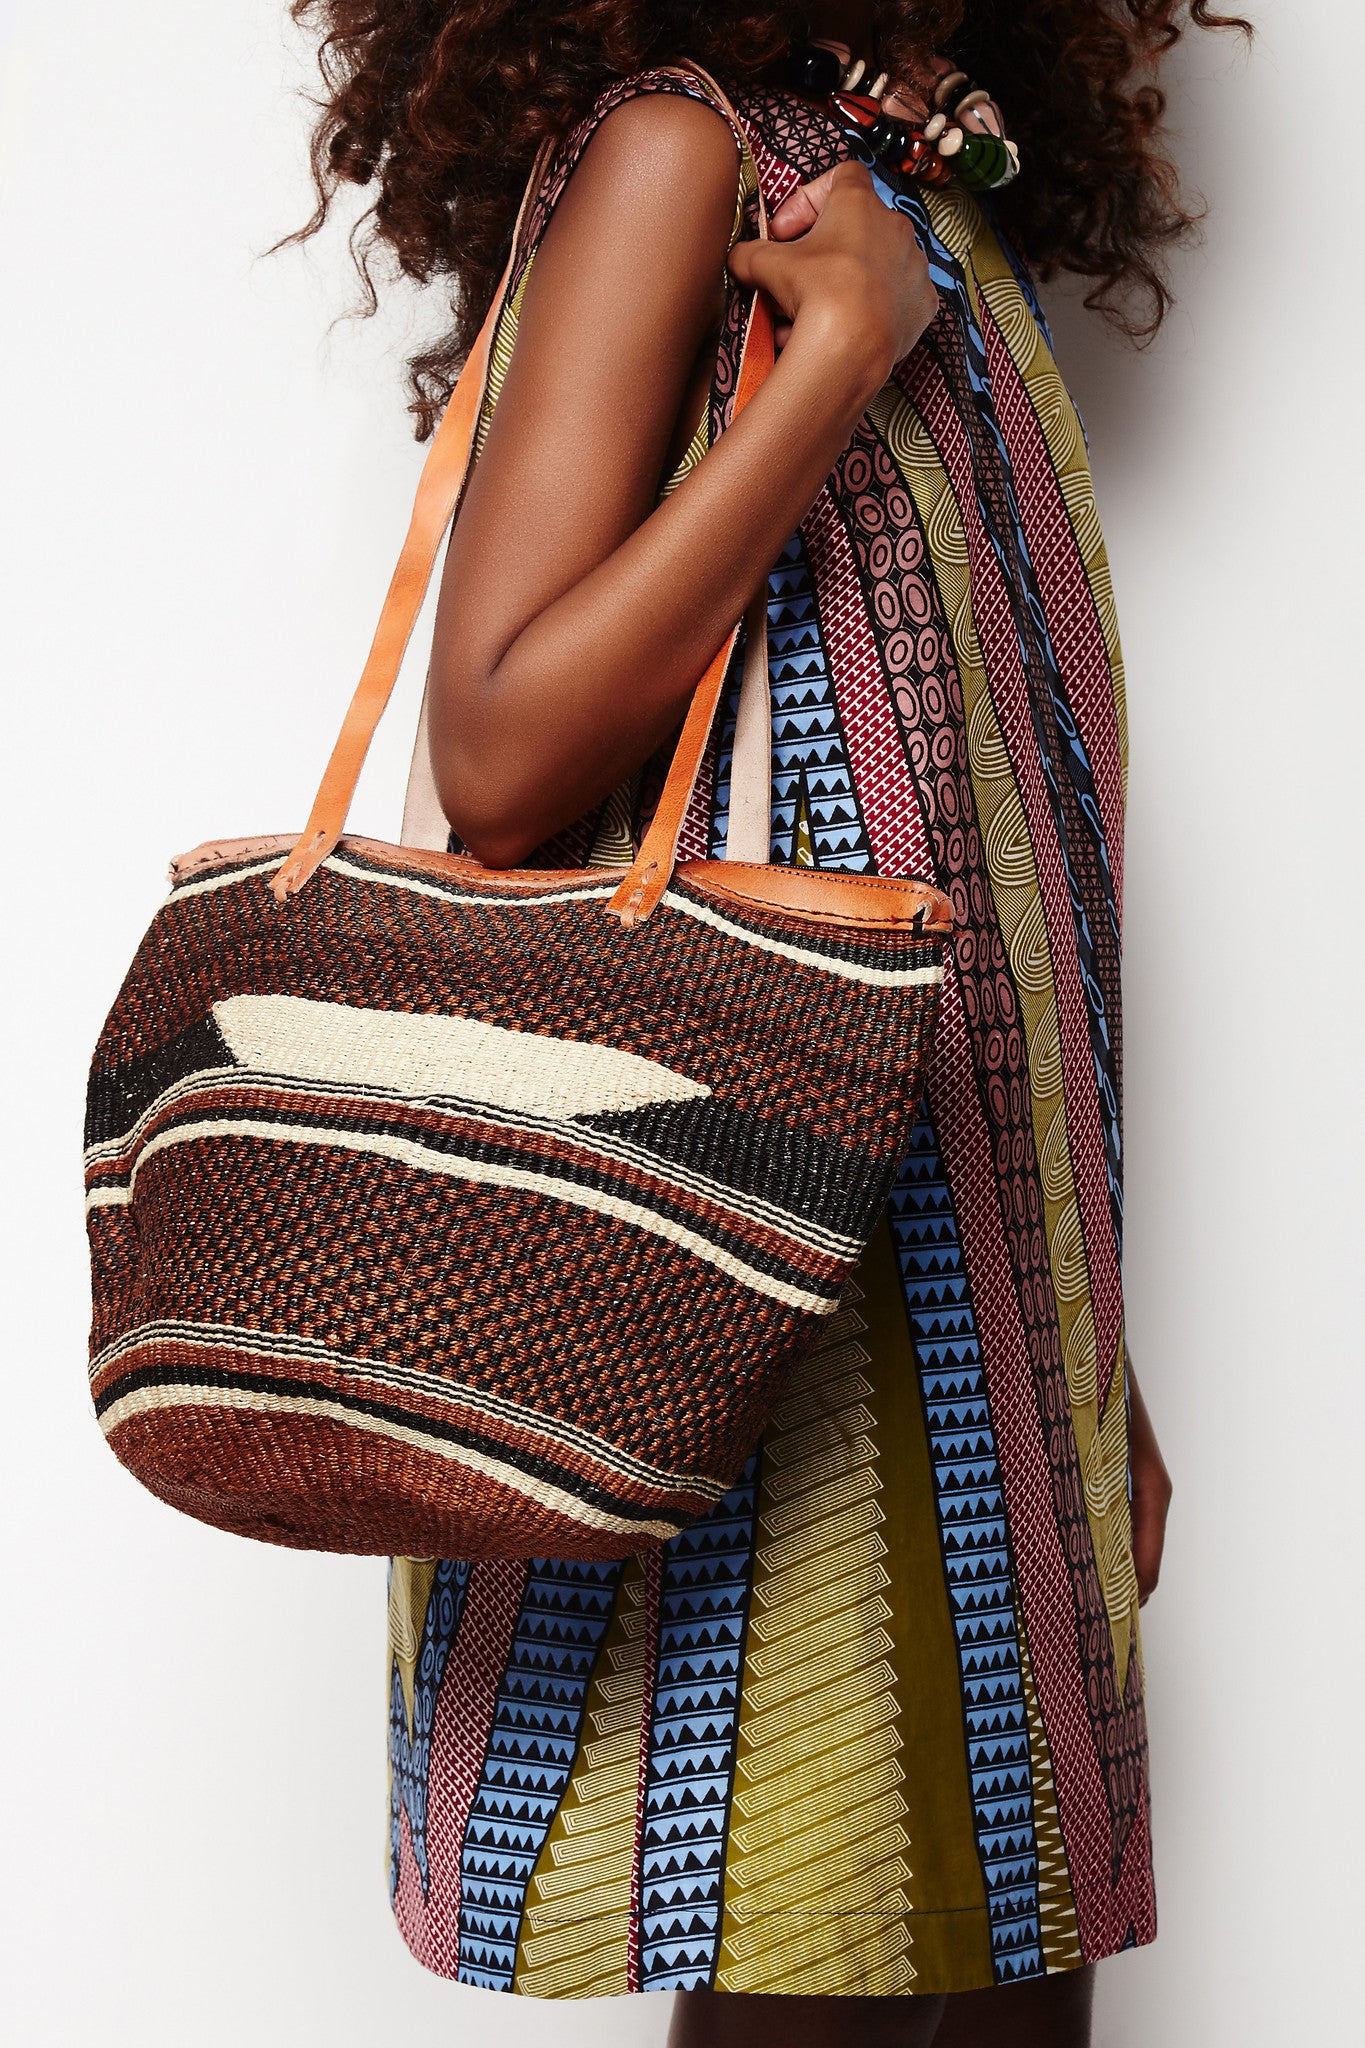 Woven bag: Double starp